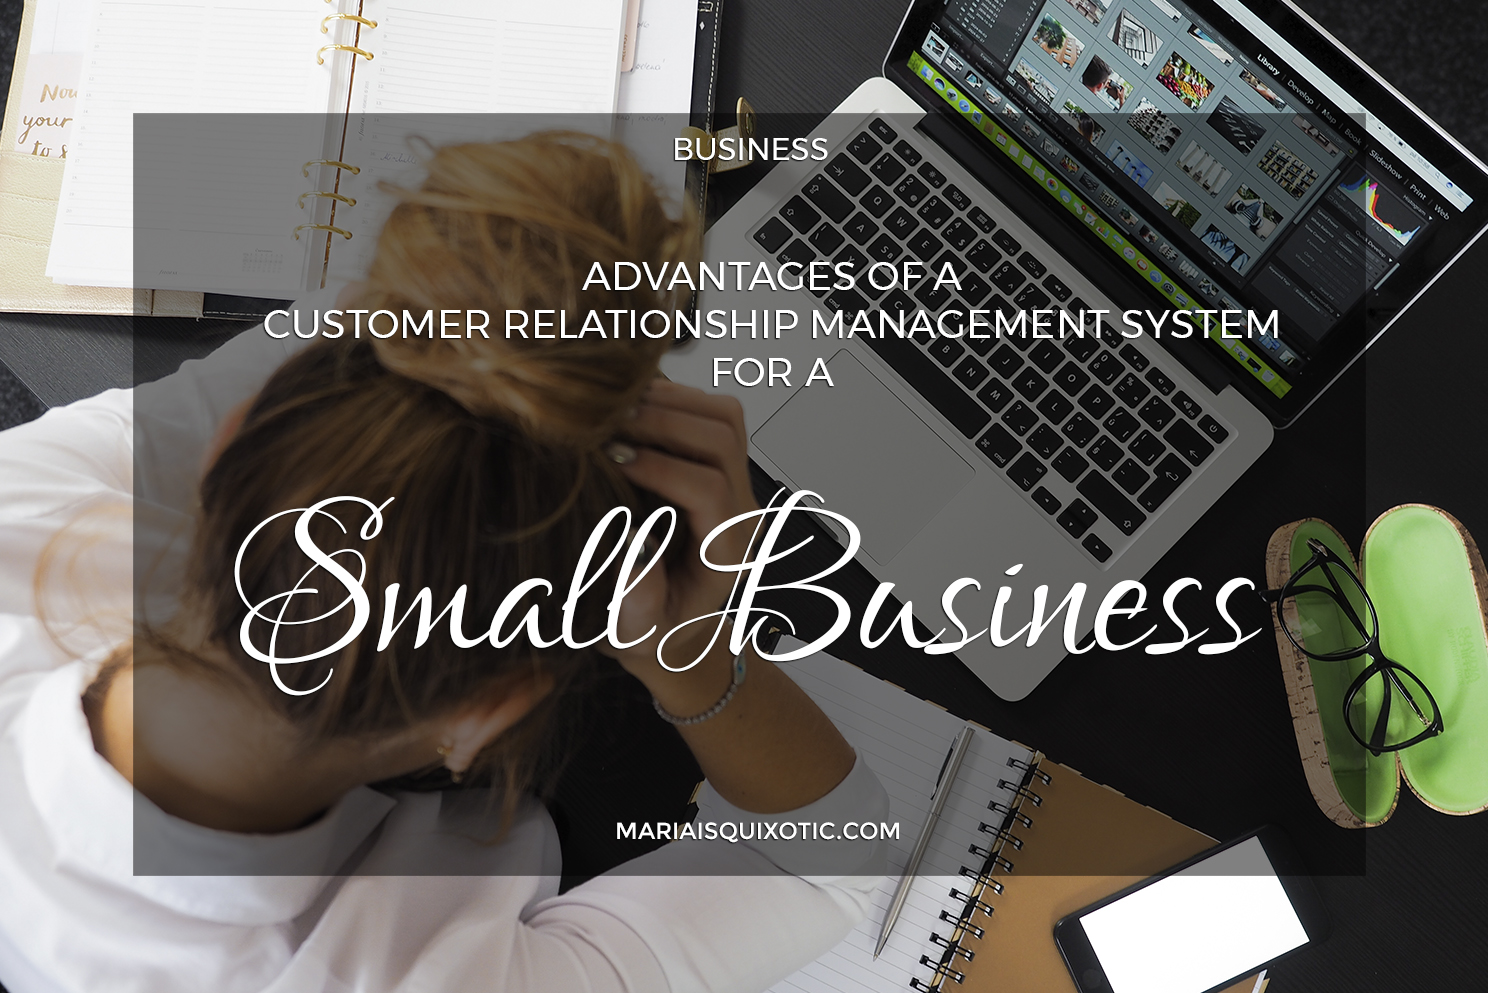 Advantages of a Customer Relationship Management System for a Small Business